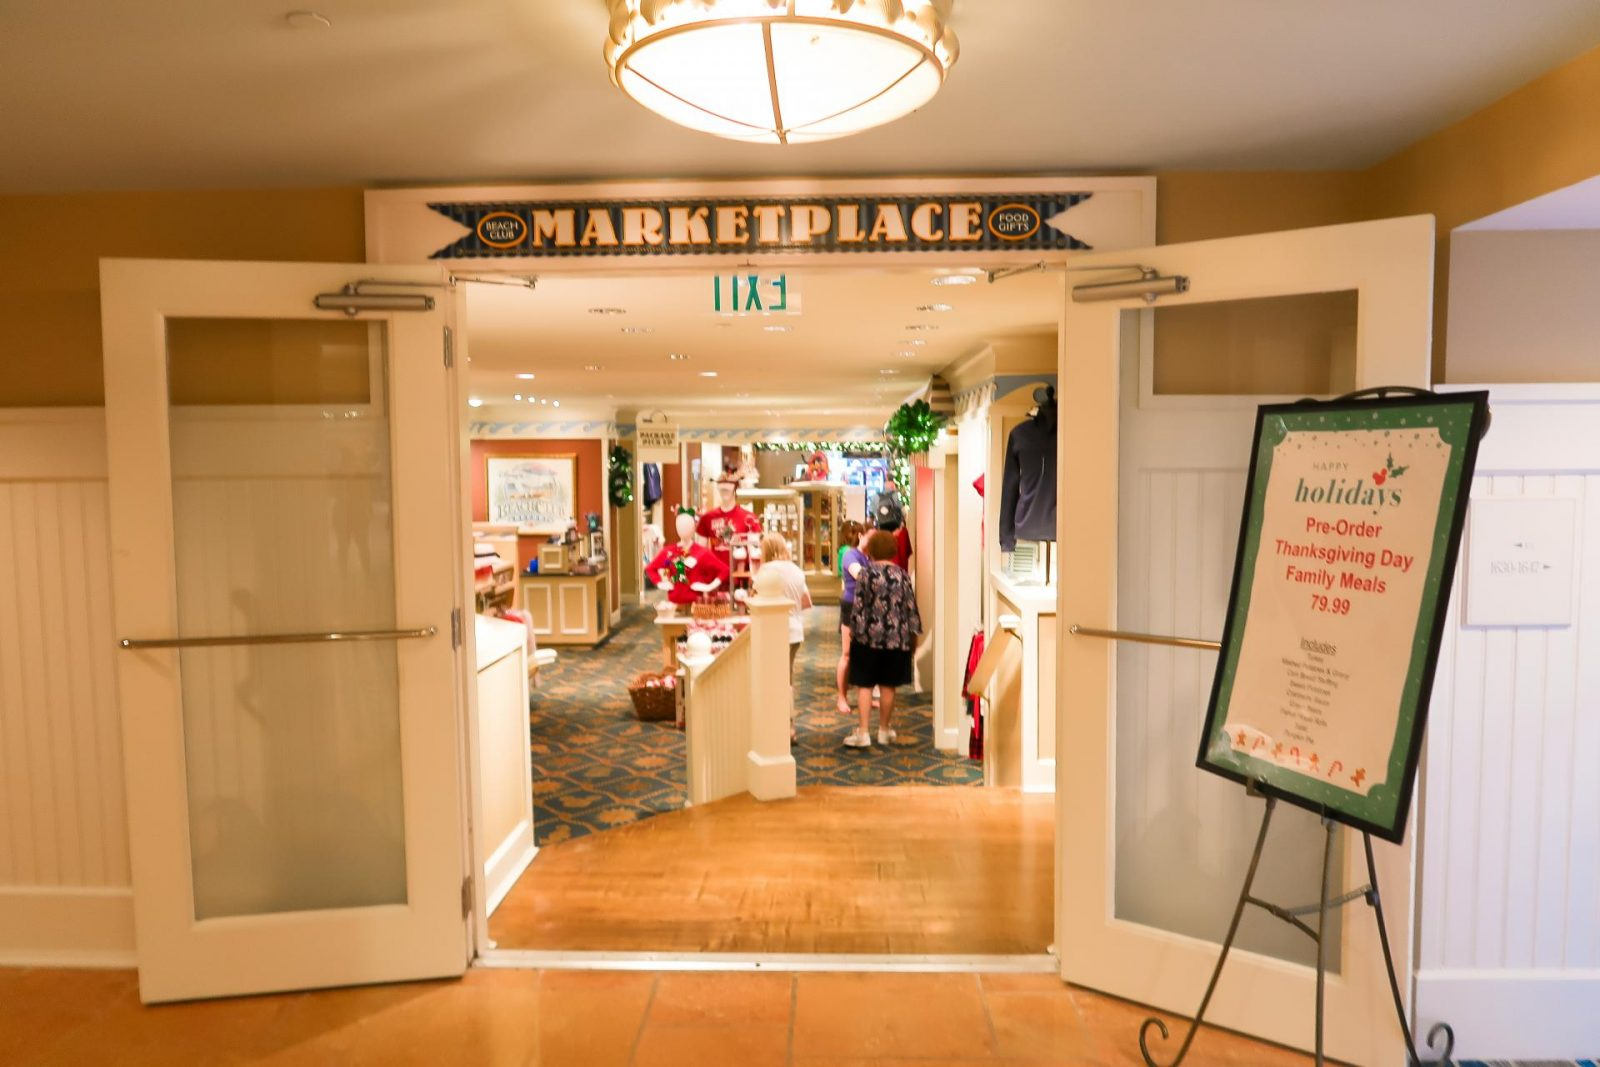 Marketplace Gift shop at Disney's Beach Club Resort